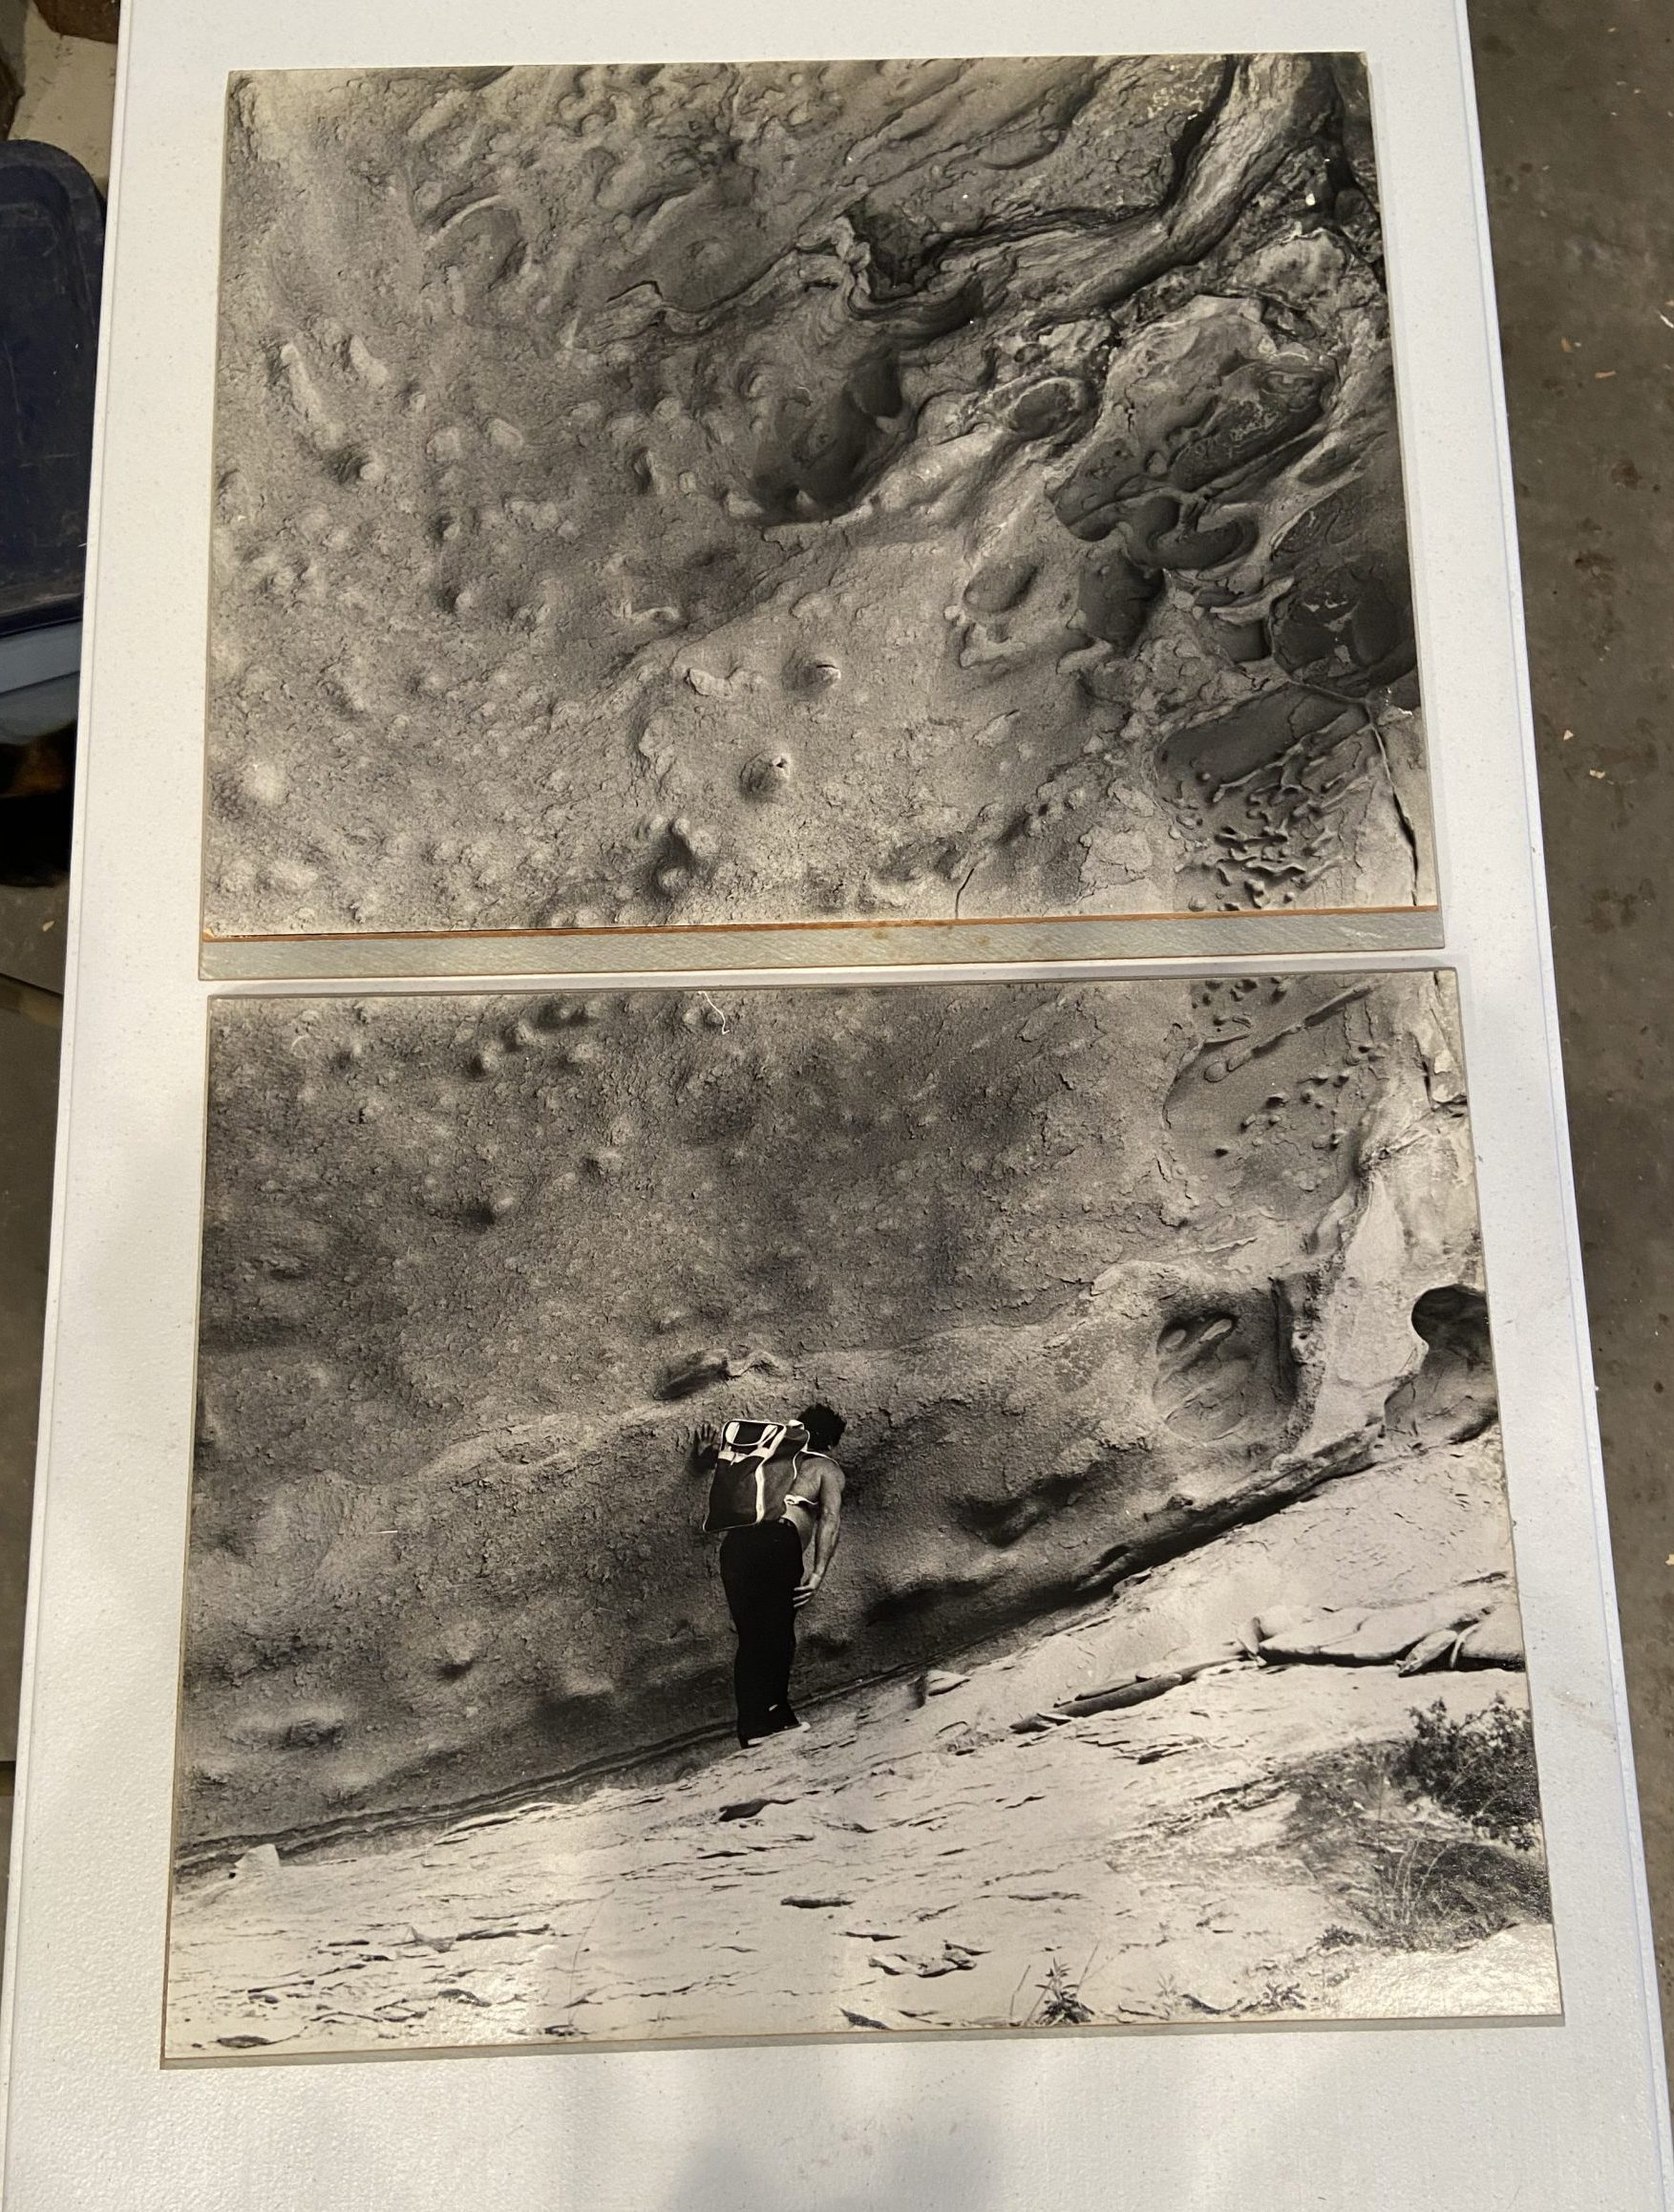 Photgraphs of cave walls, and a figure looking at them